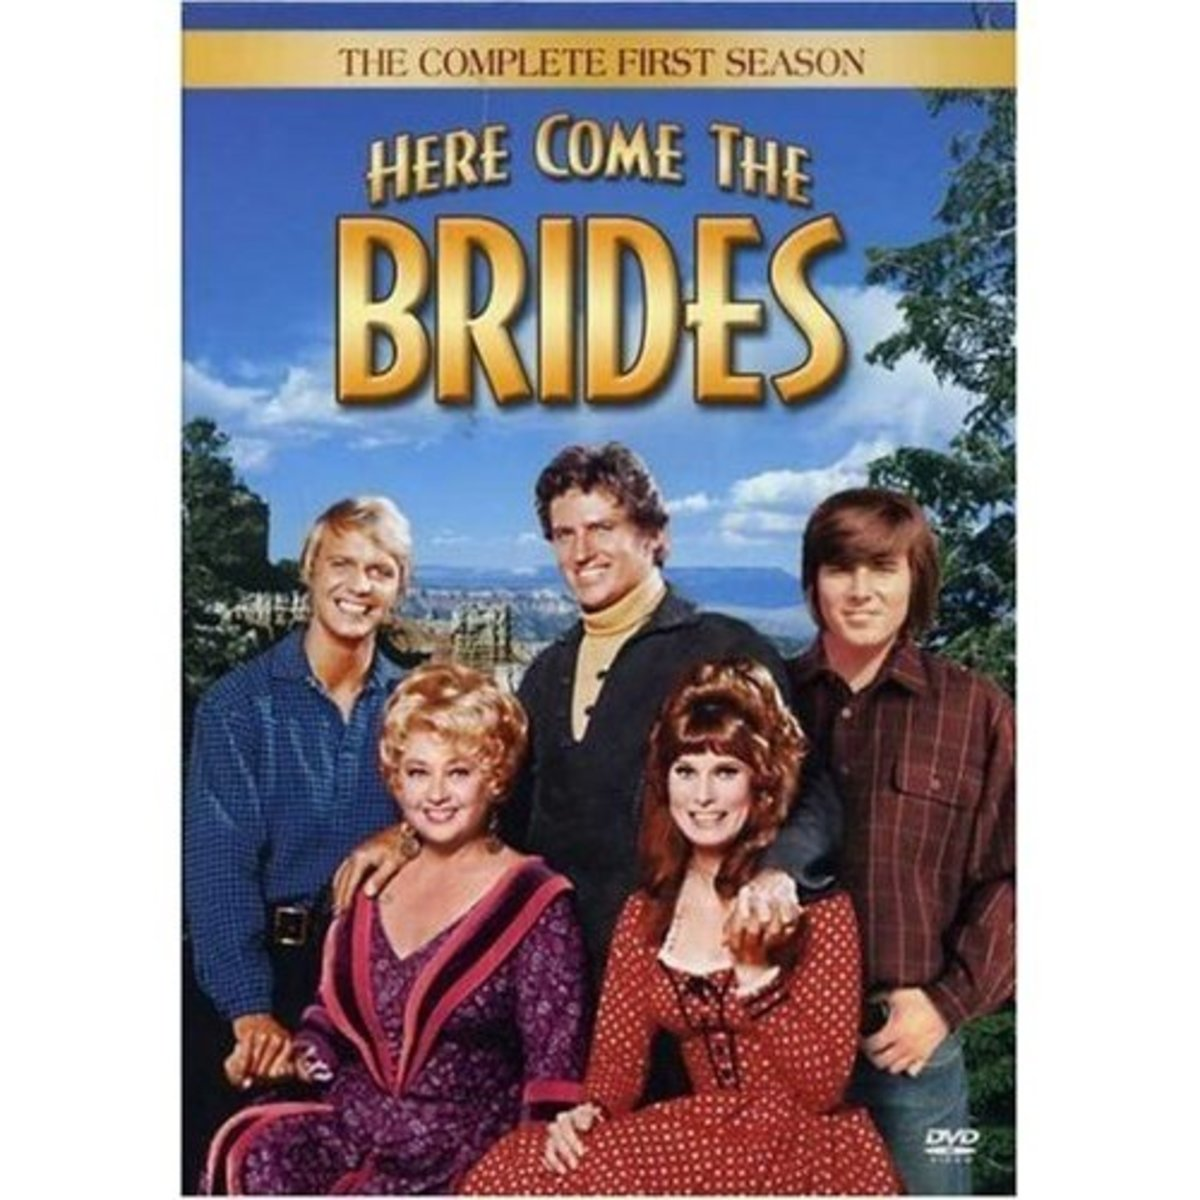 Here Come the Brides Cast